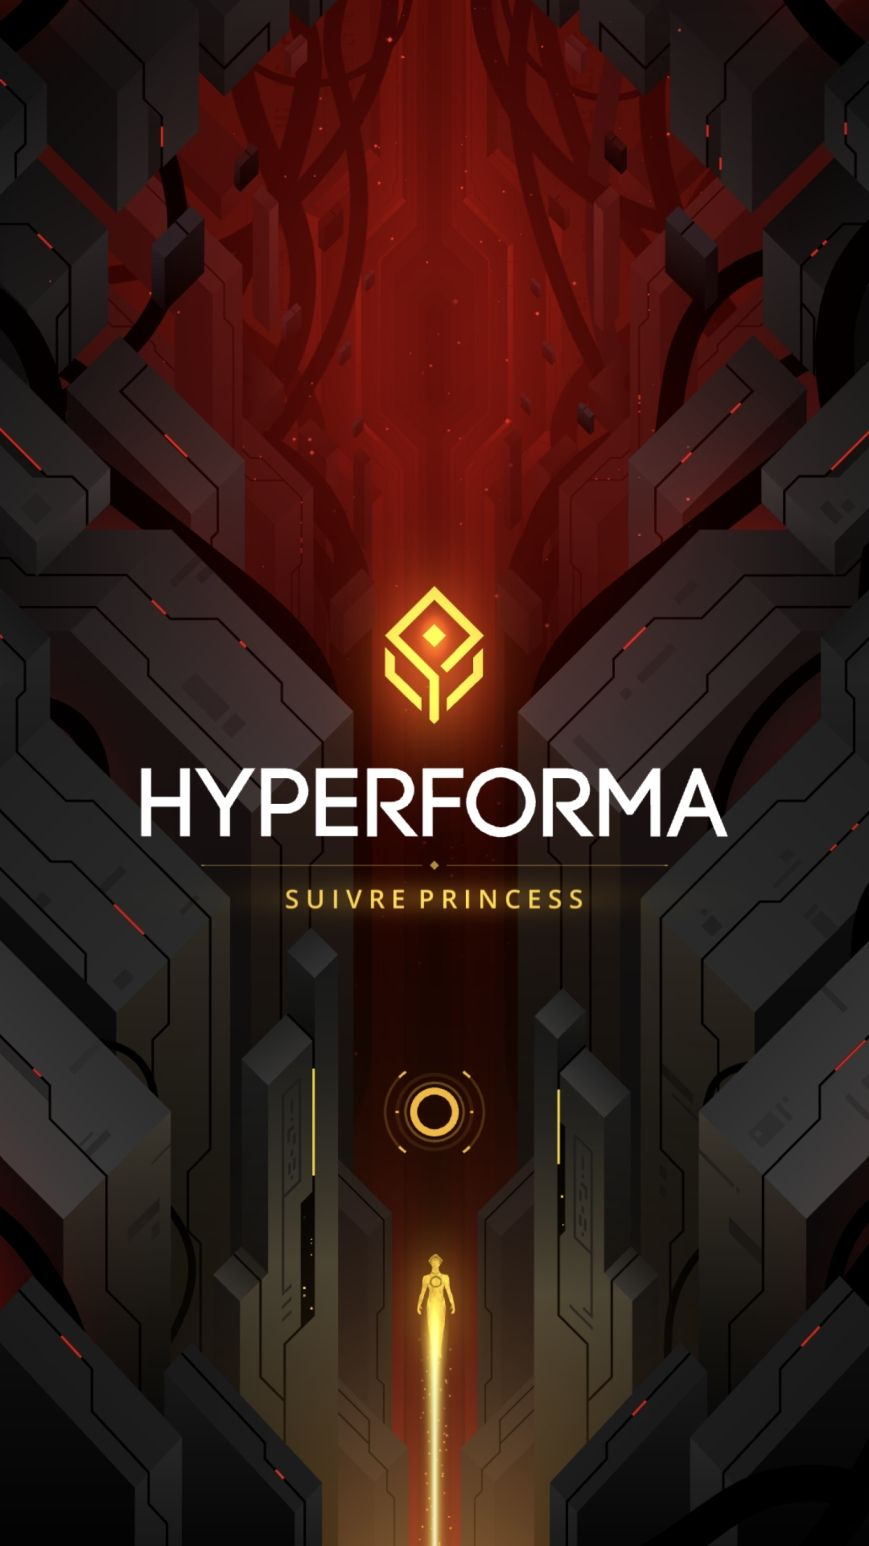 Hyperforma (copie d'écran 1 sur iPhone / iPad / Apple TV)